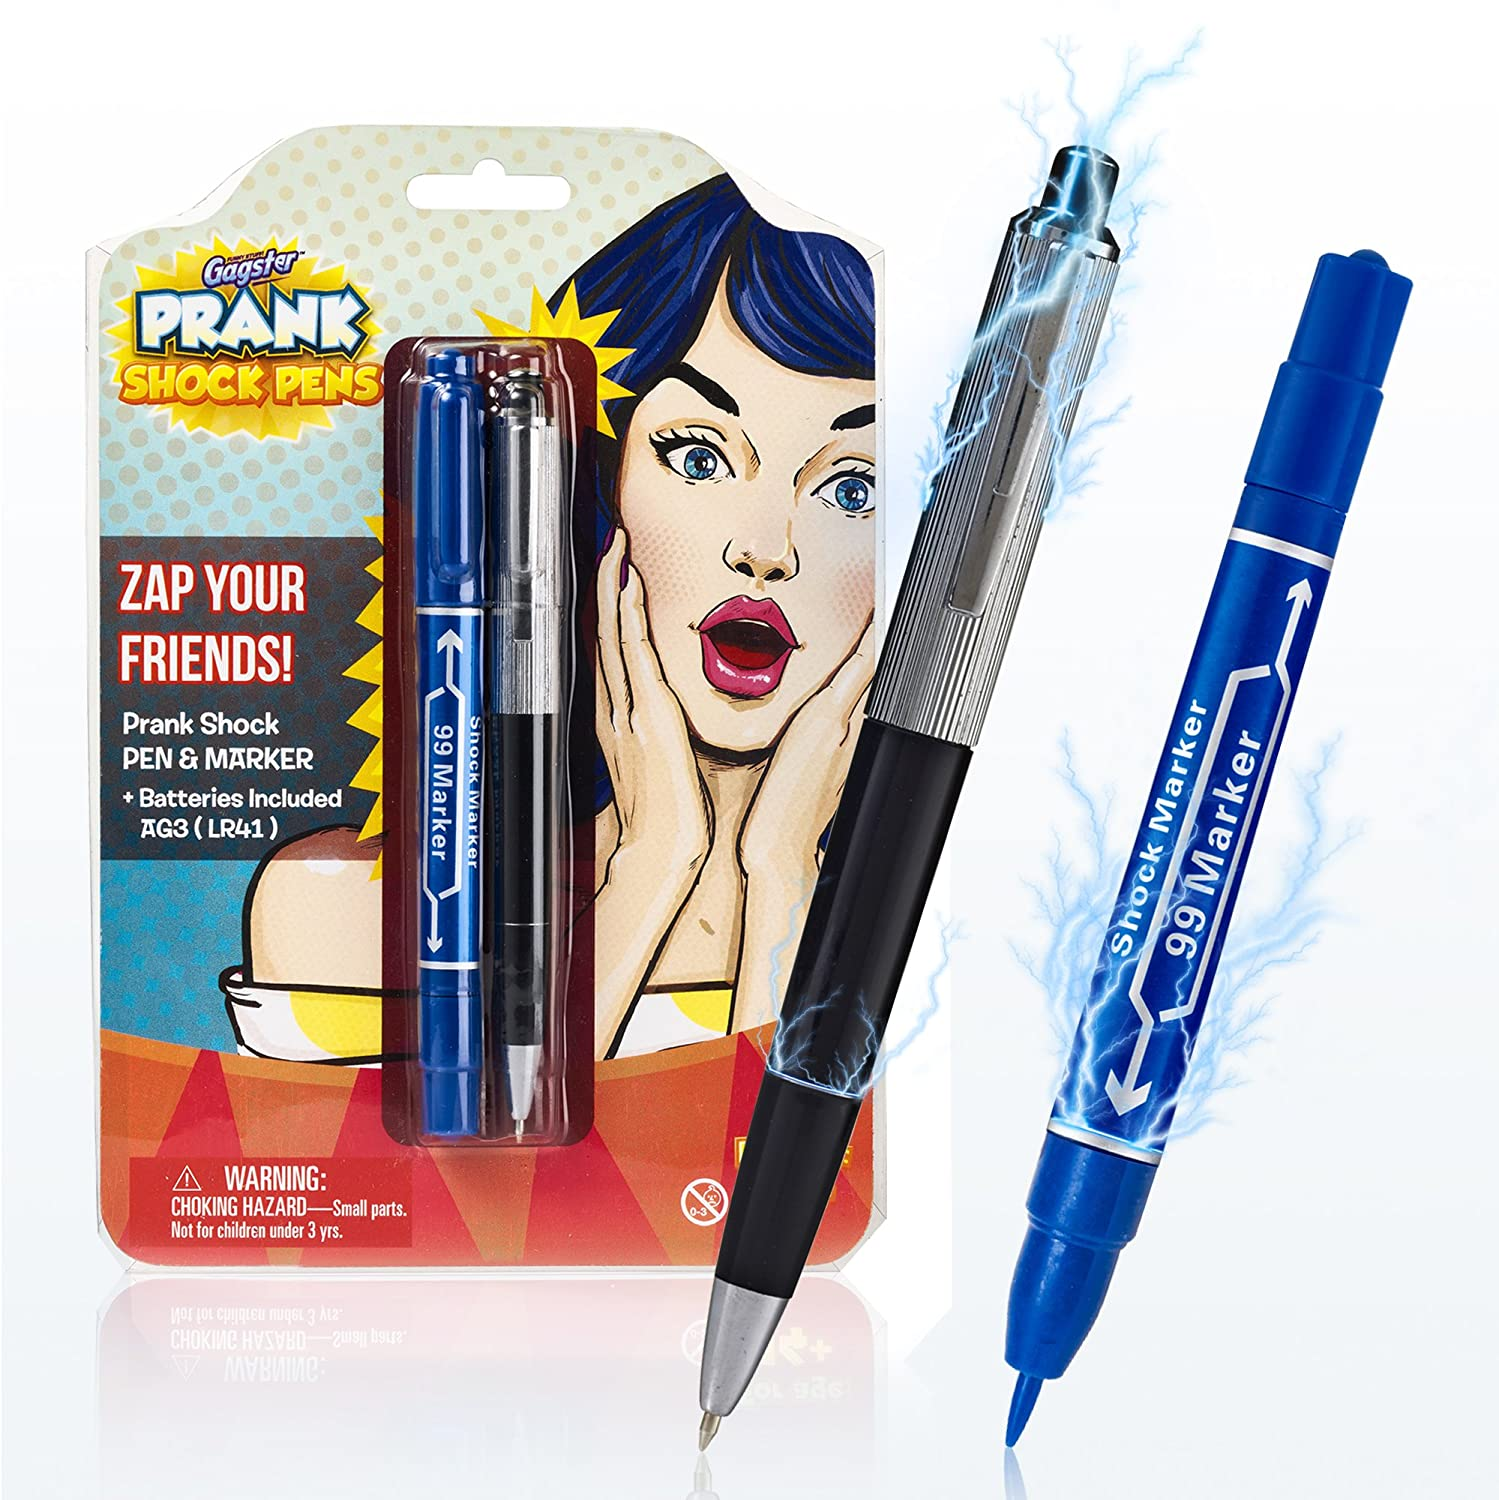 Shock Pen and Marker Prank